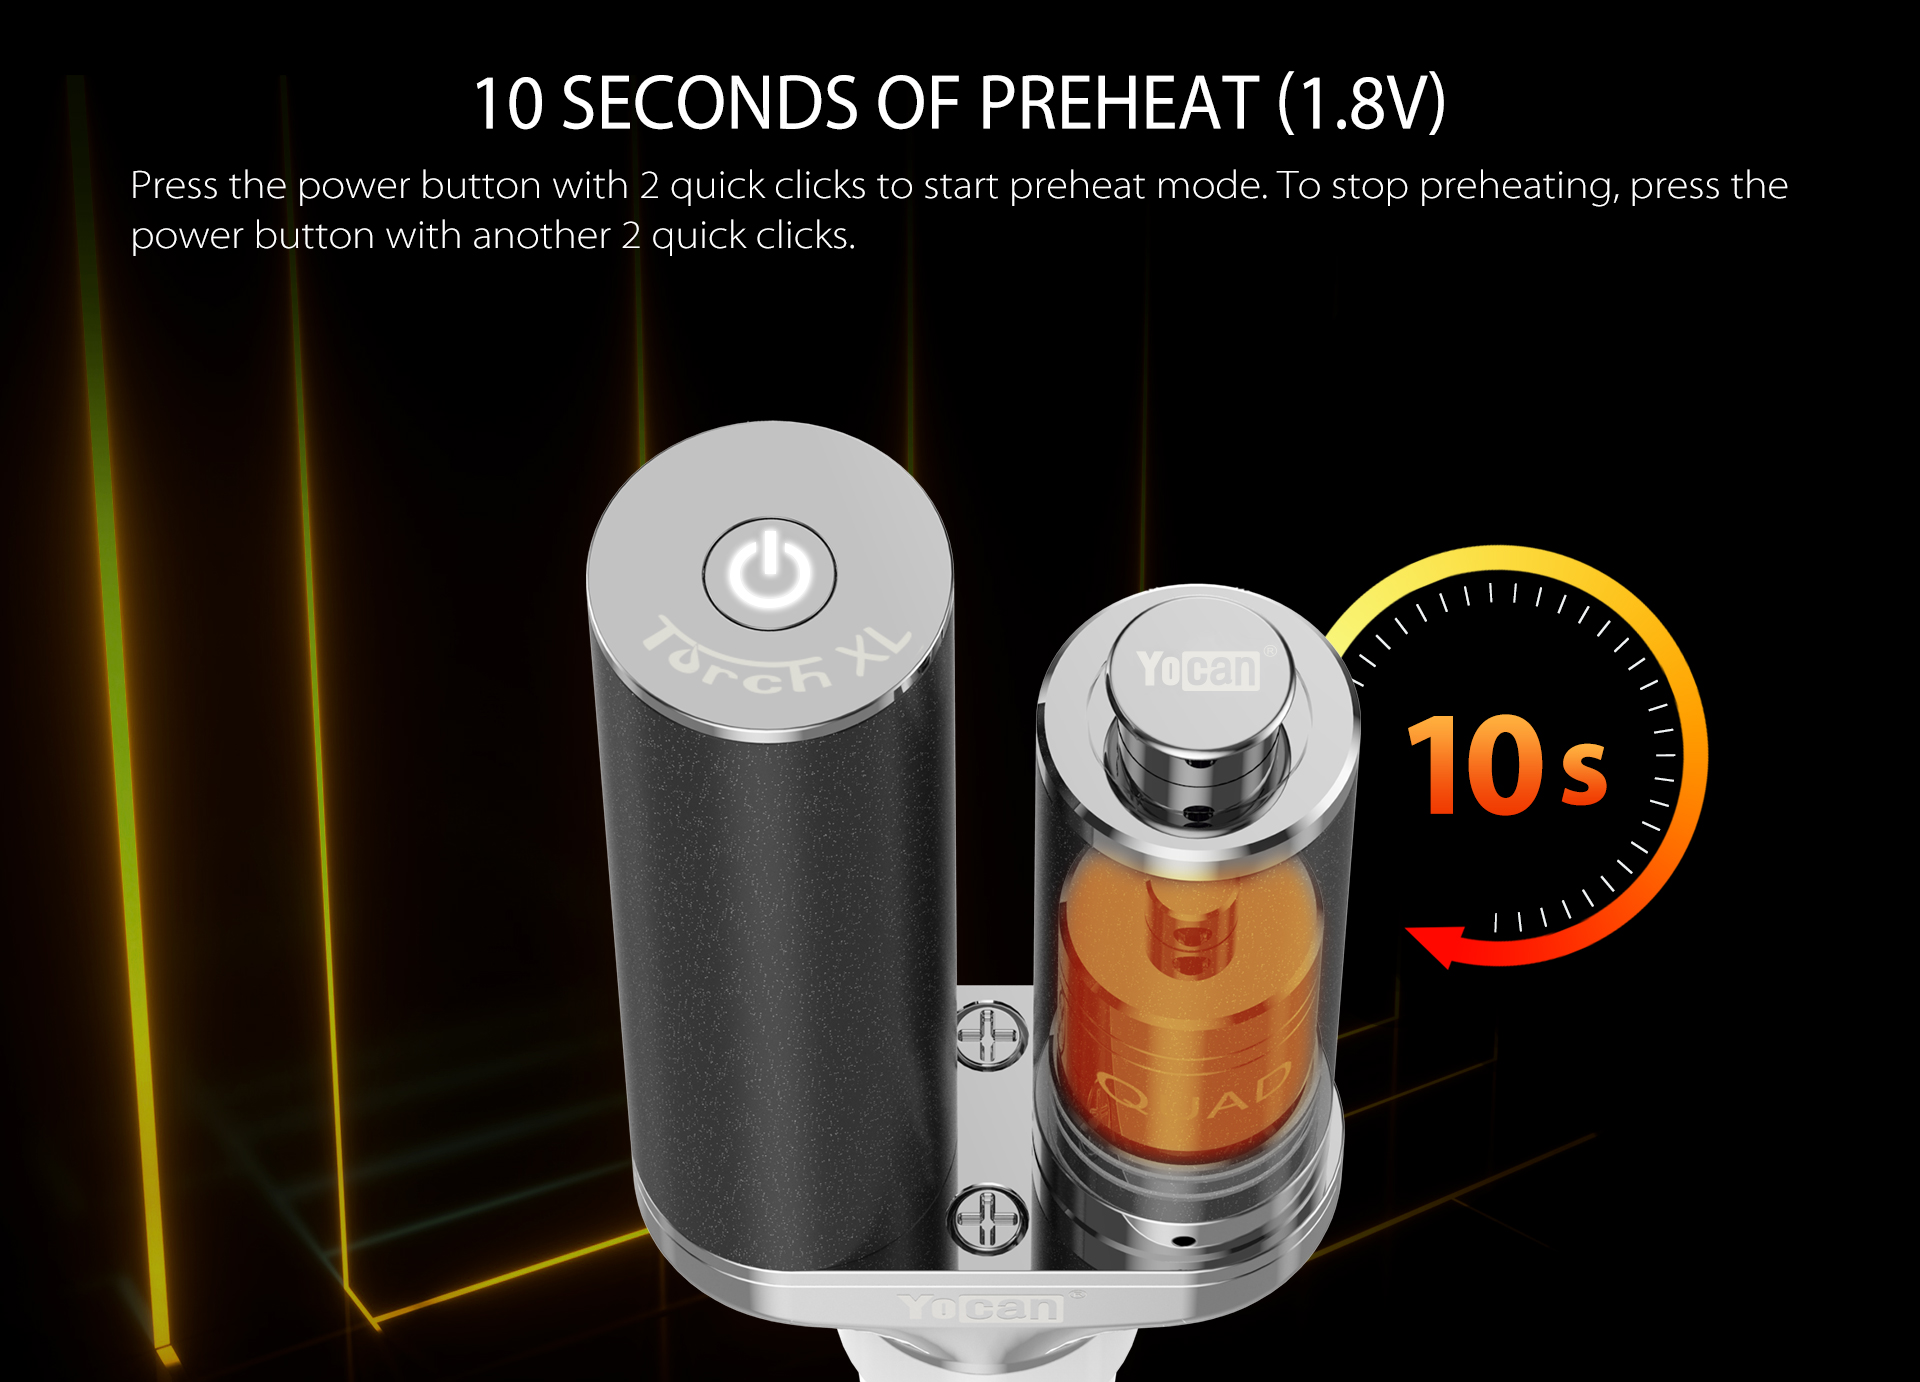 Yocan Torch XL features 10 seconds of preheat (1.8v) function.